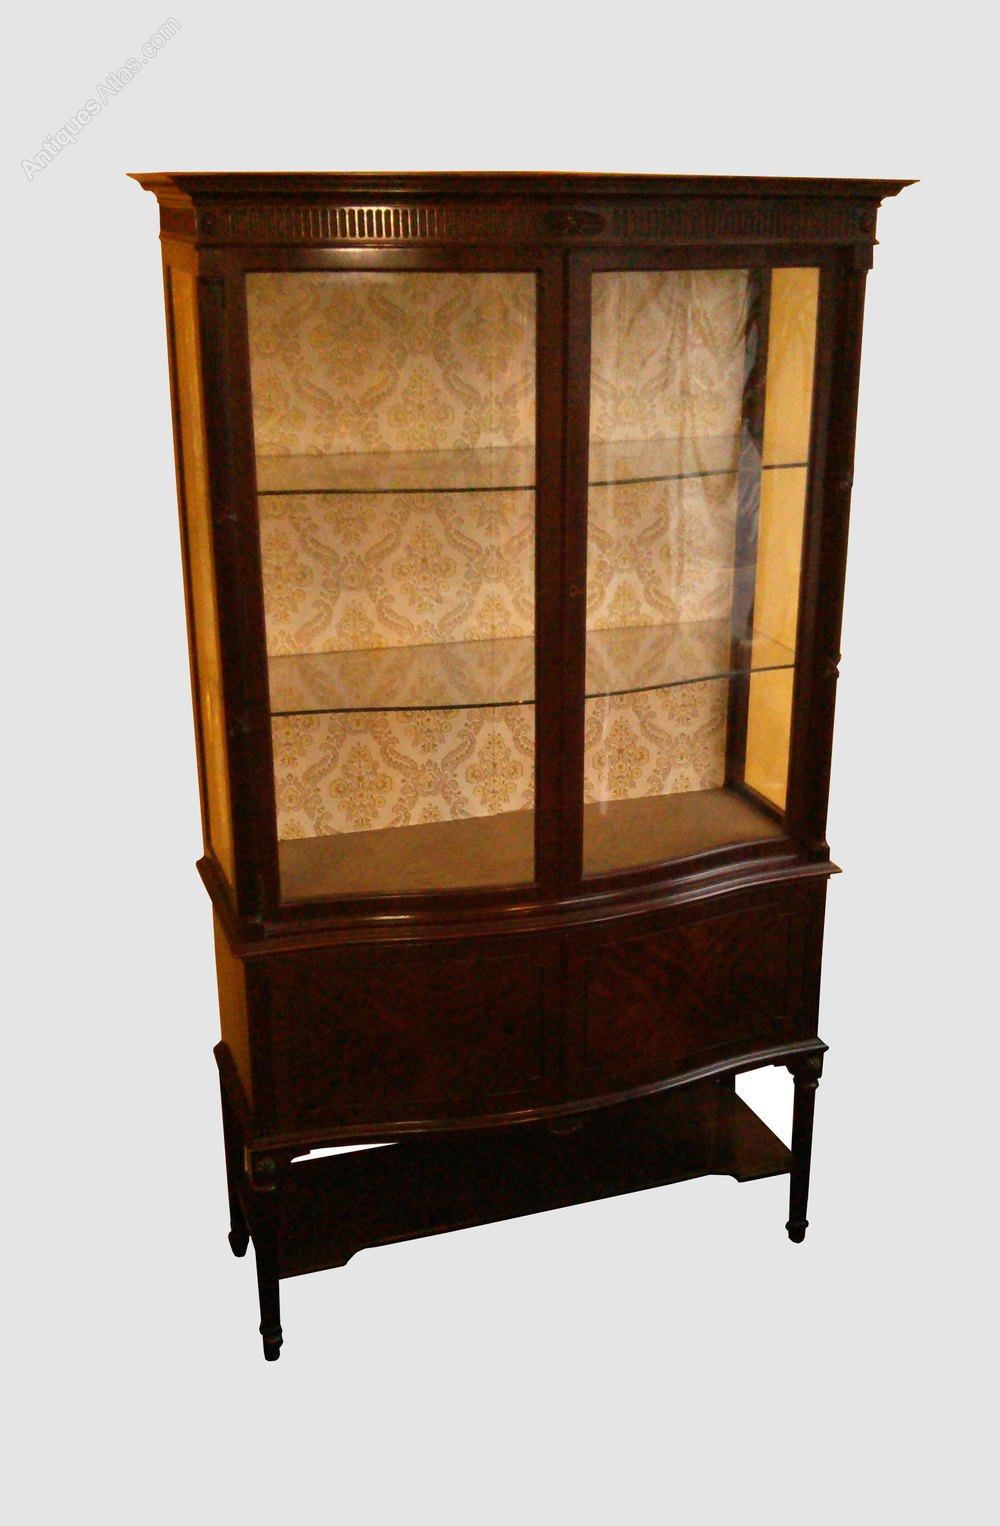 Fine quality serpentine fronted glass display cabinet for Antique display cabinet